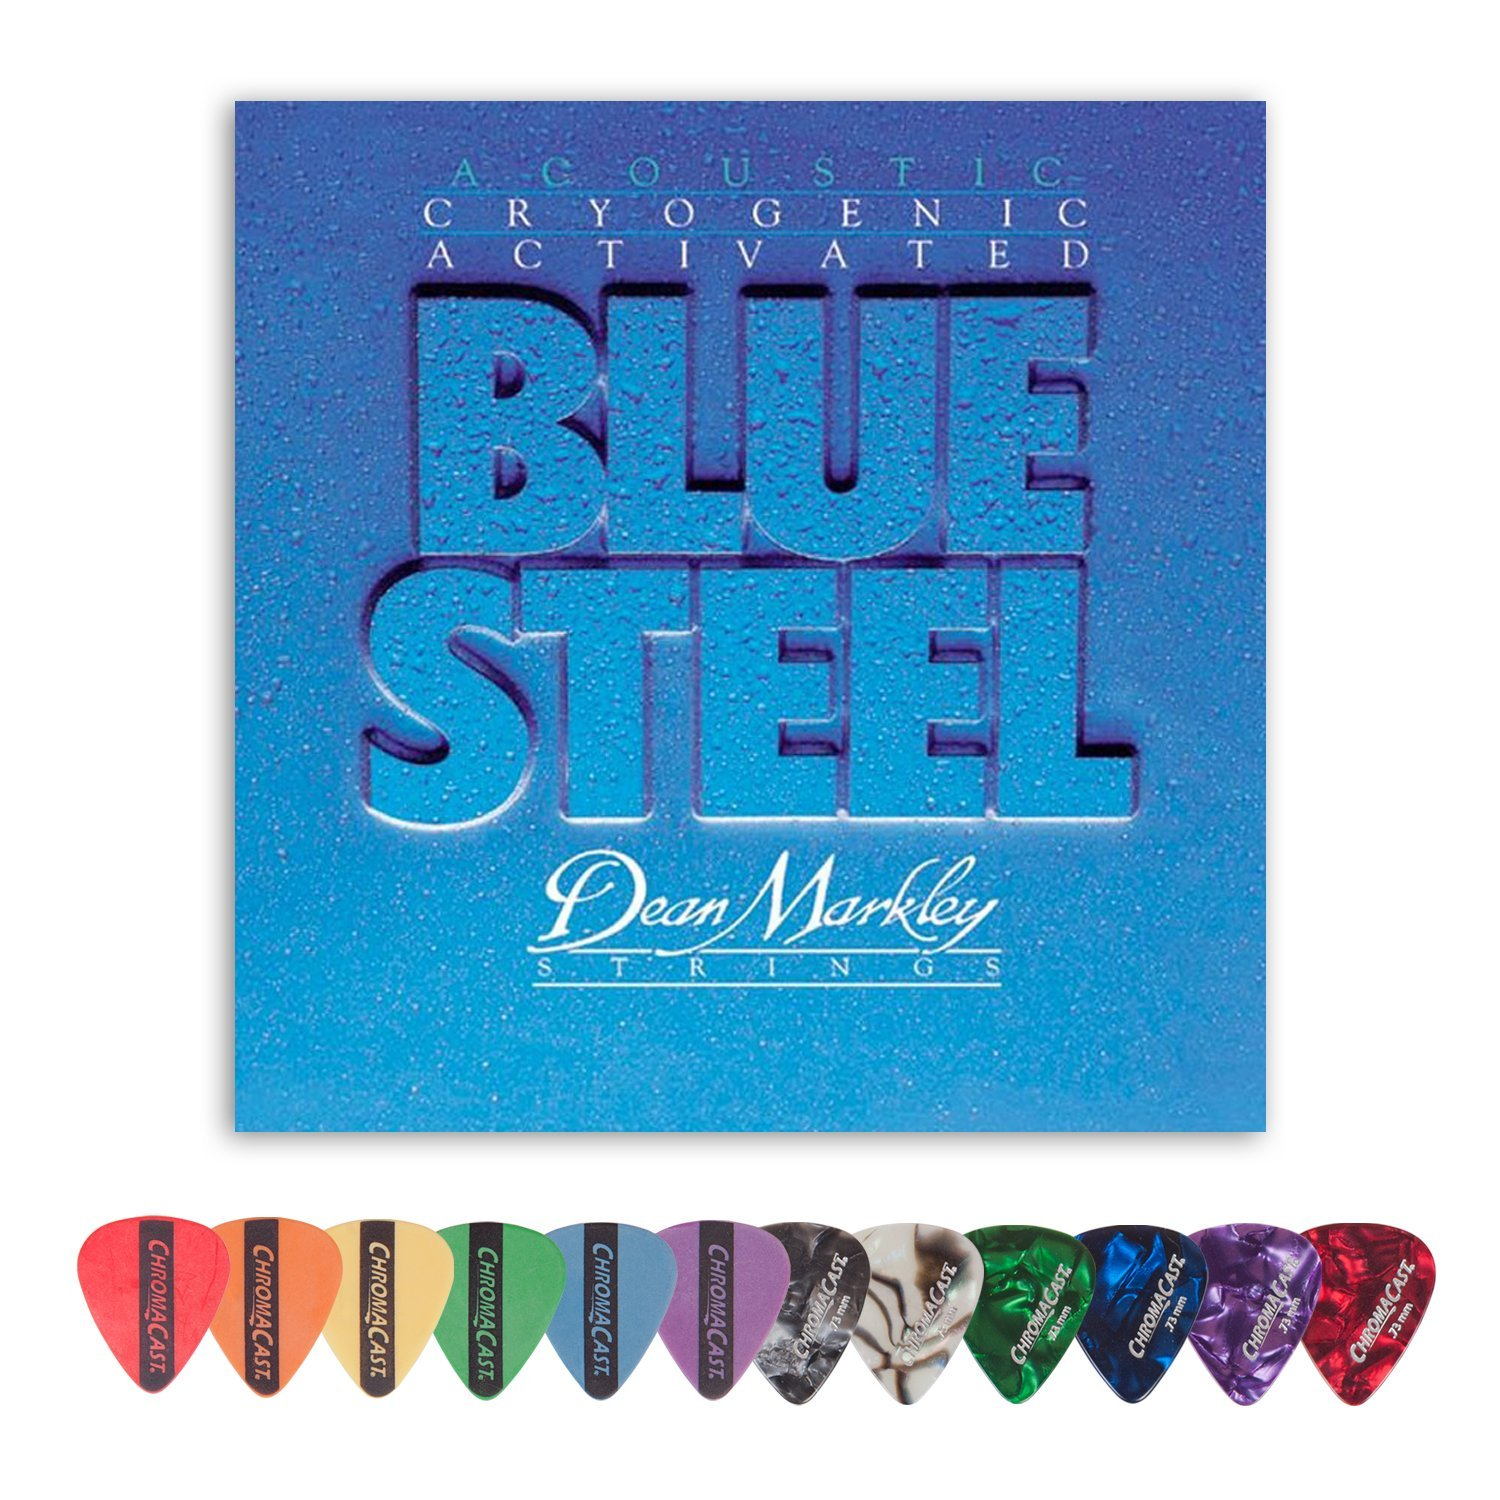 Dean Markley 2036 Blue Steel Medium-Light Gauge Acoustic Guitar Strings (.012-.054) with ChromaCast 12 Pick Sampler